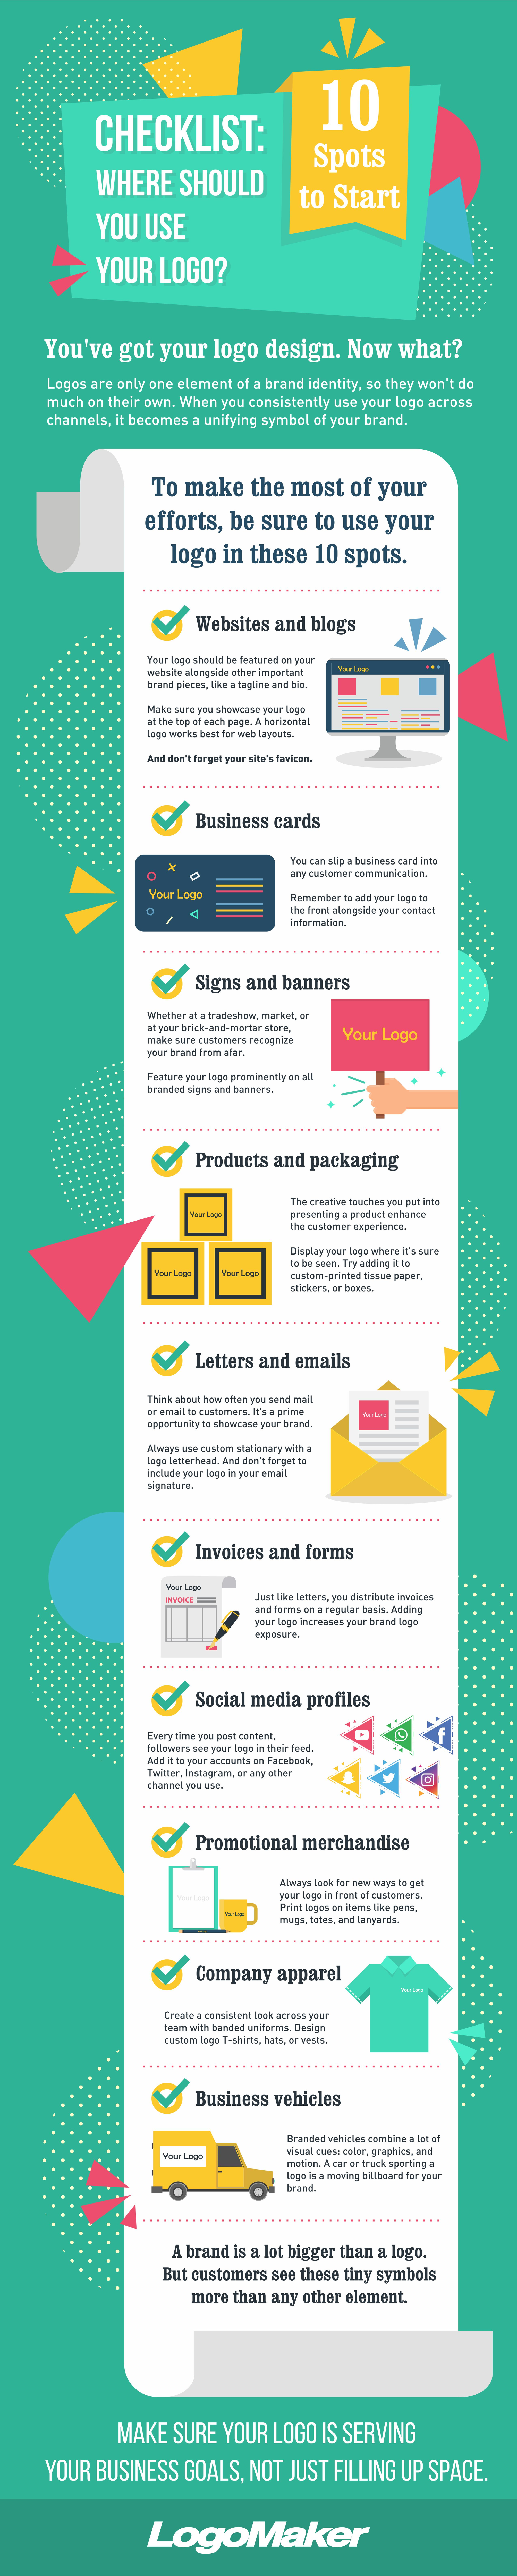 Infographic displaying where you should use your logo design such as websites businessc cards signs and banners products and packaging